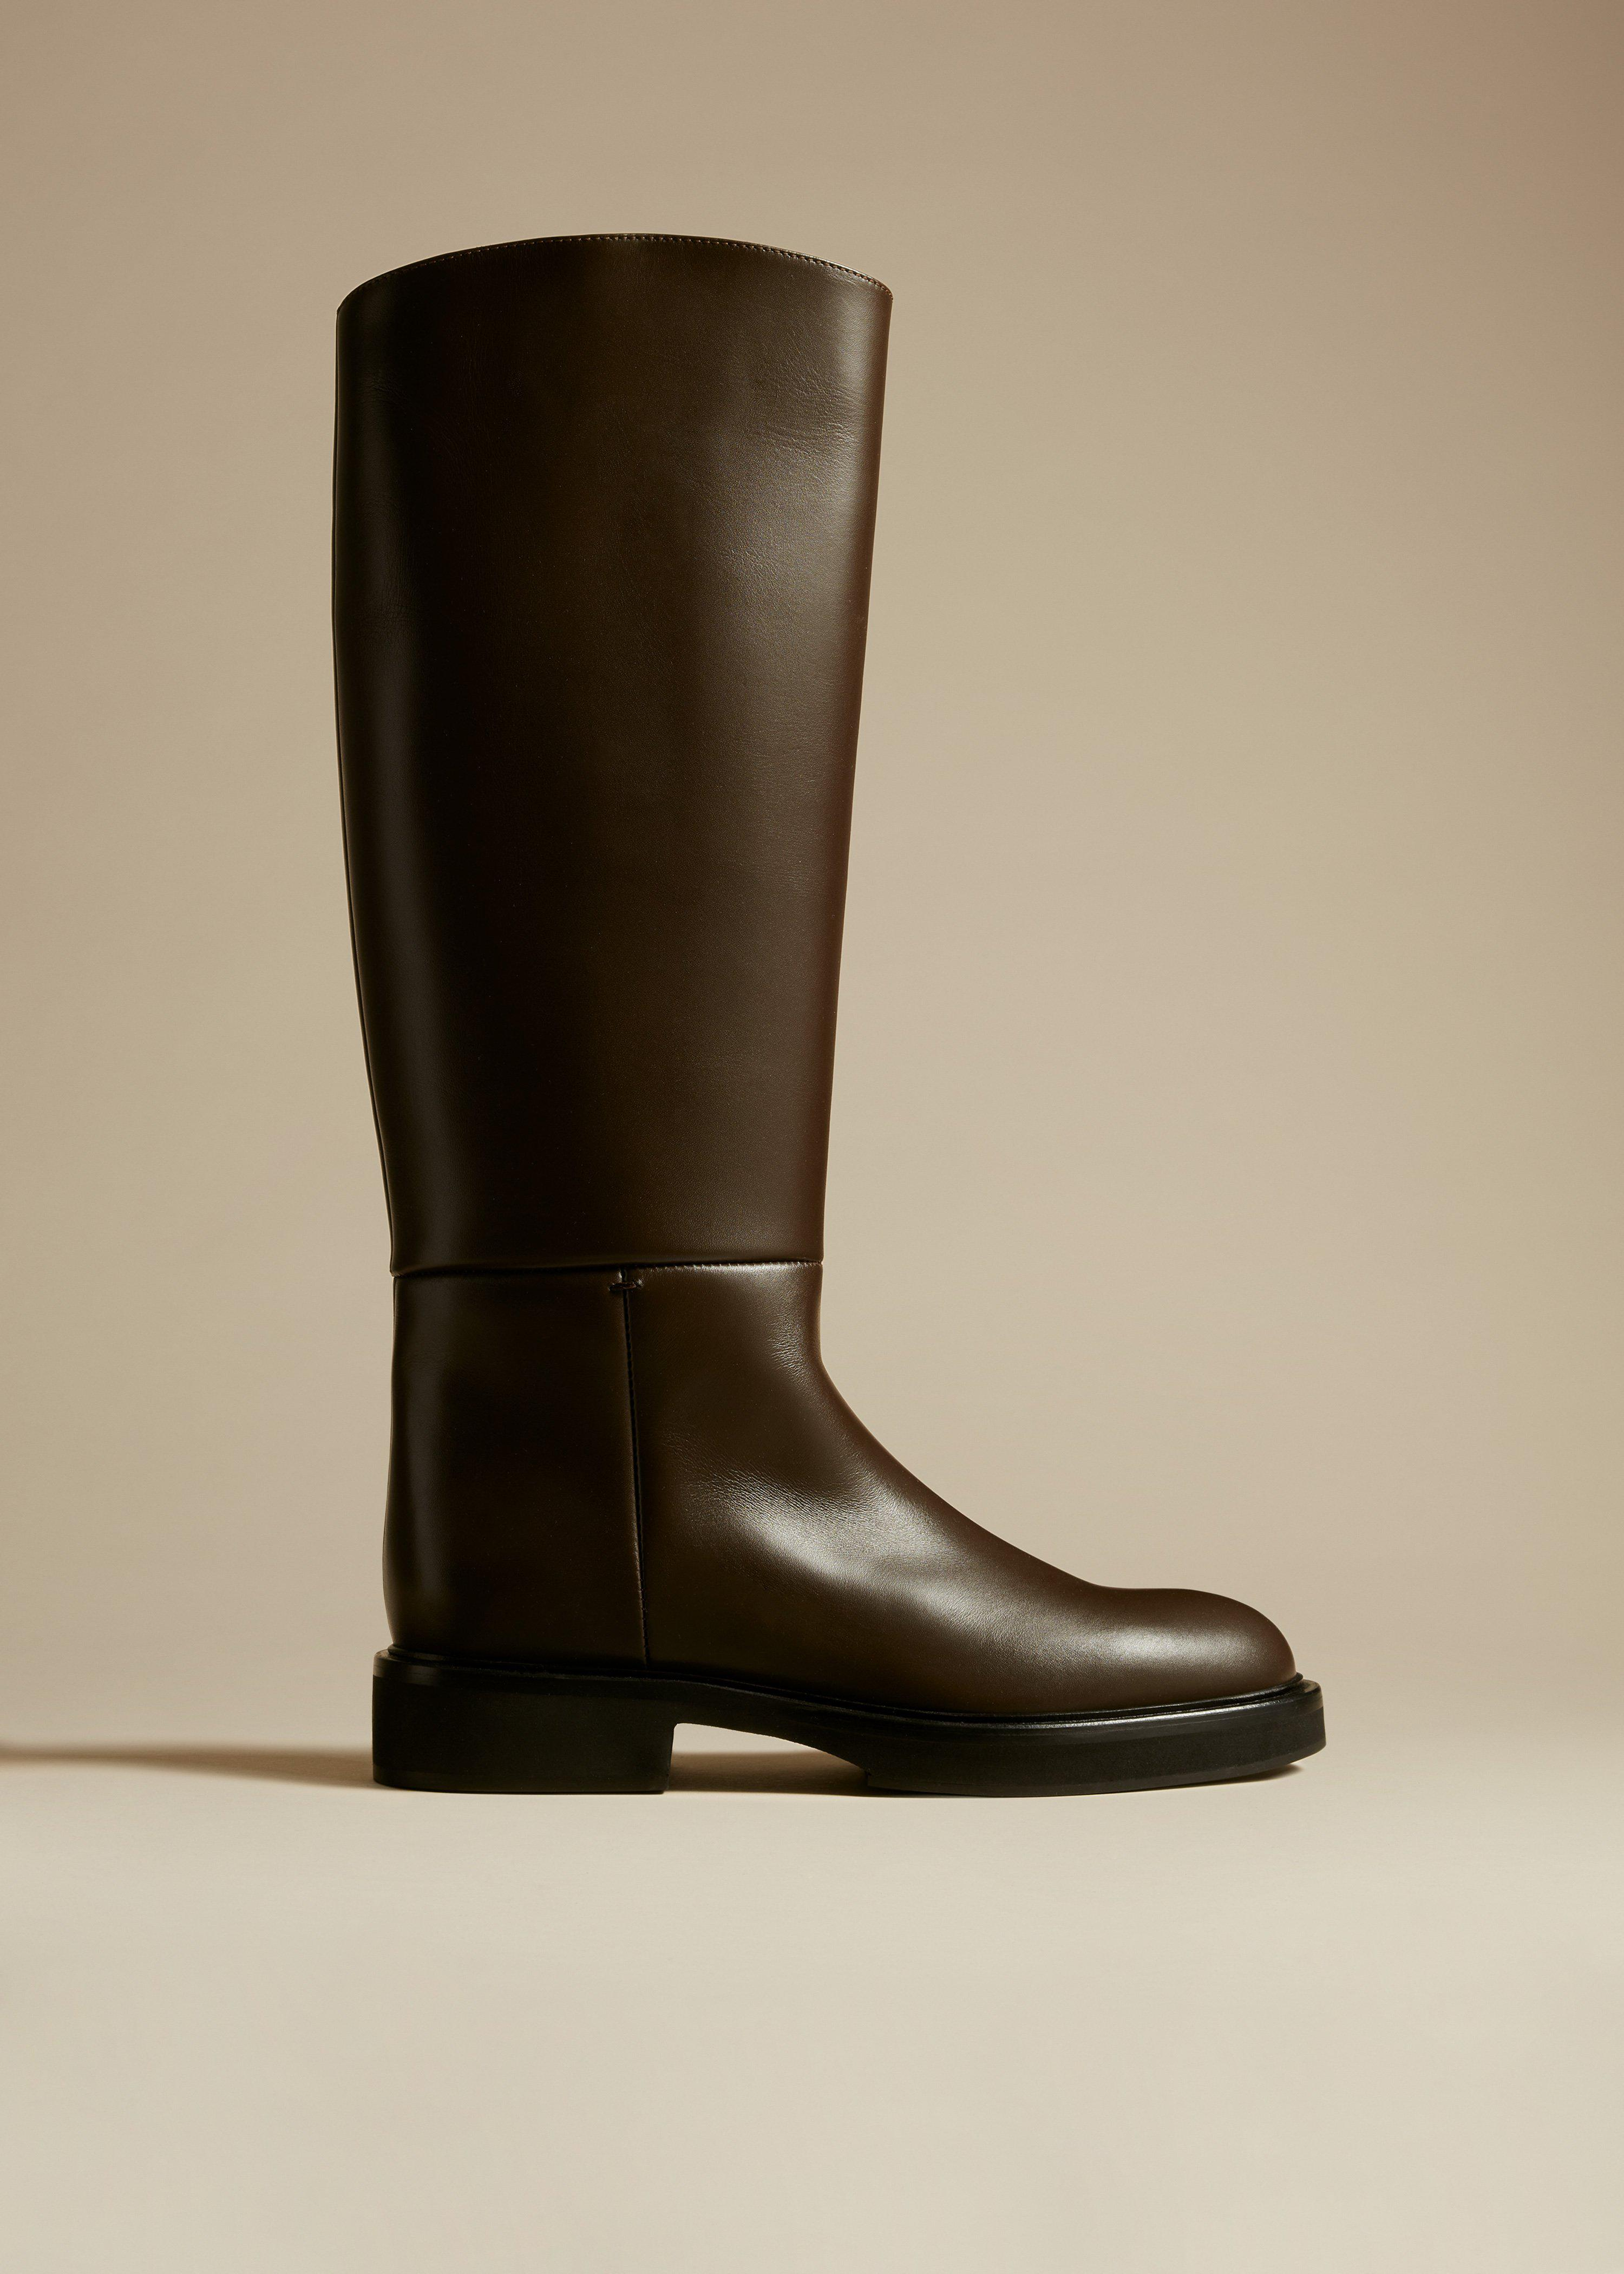 The Derby Boot in Dark Brown Leather